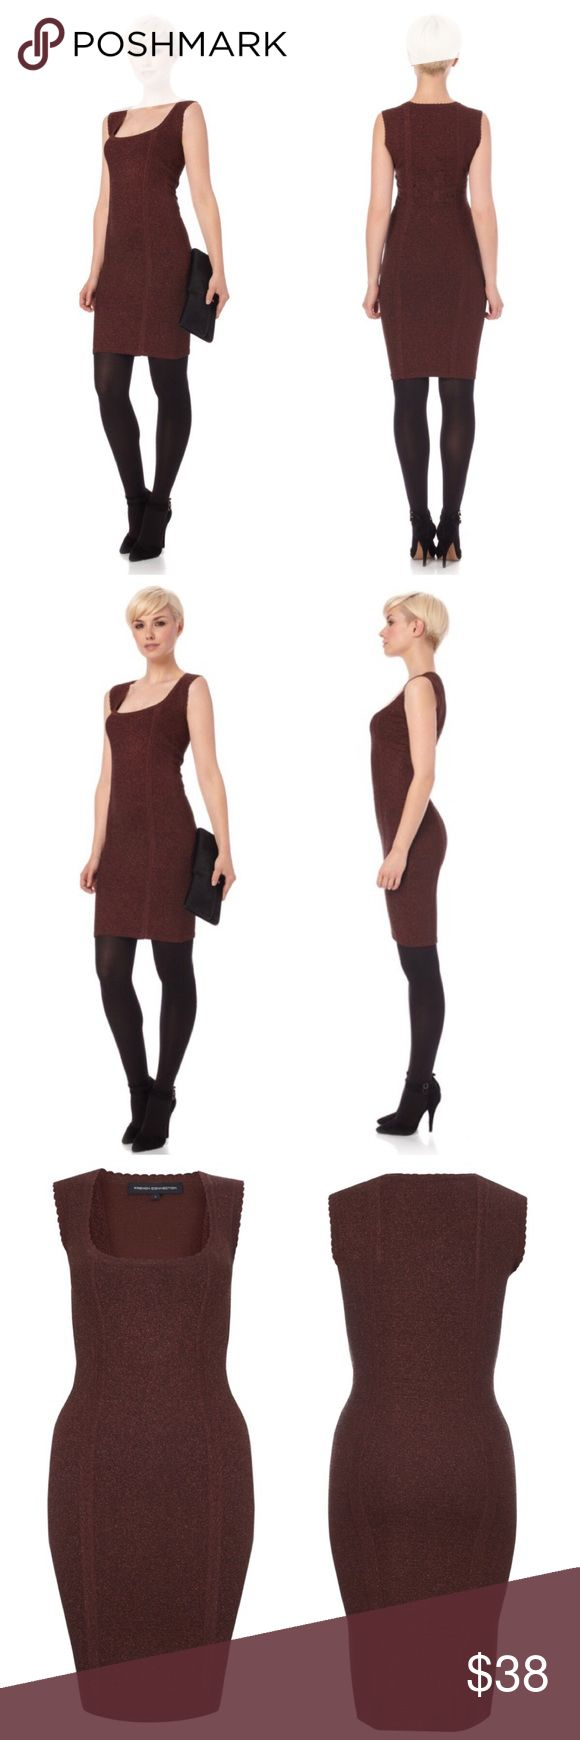 "French Connection Dani Lurex Metallic Dress Sz 10 French Connection Dani Lurex Knit Metallic Bodycon Dress  • Sz 10 • Metallic bitter plum purple color (has a brown tint) • 47% viscose 31% nylon 13% polyester 8% metallized fibers 1% elastase • Unlined • The metallic knit fabric is thick and very stretchy. It will hold in similar to shapewear • 36"" length • 15"" bust (measured flat), fabric stretches • Scalloped detailing edge the mini cap sleeves and scoop neck collar • Very good pre-loved…"